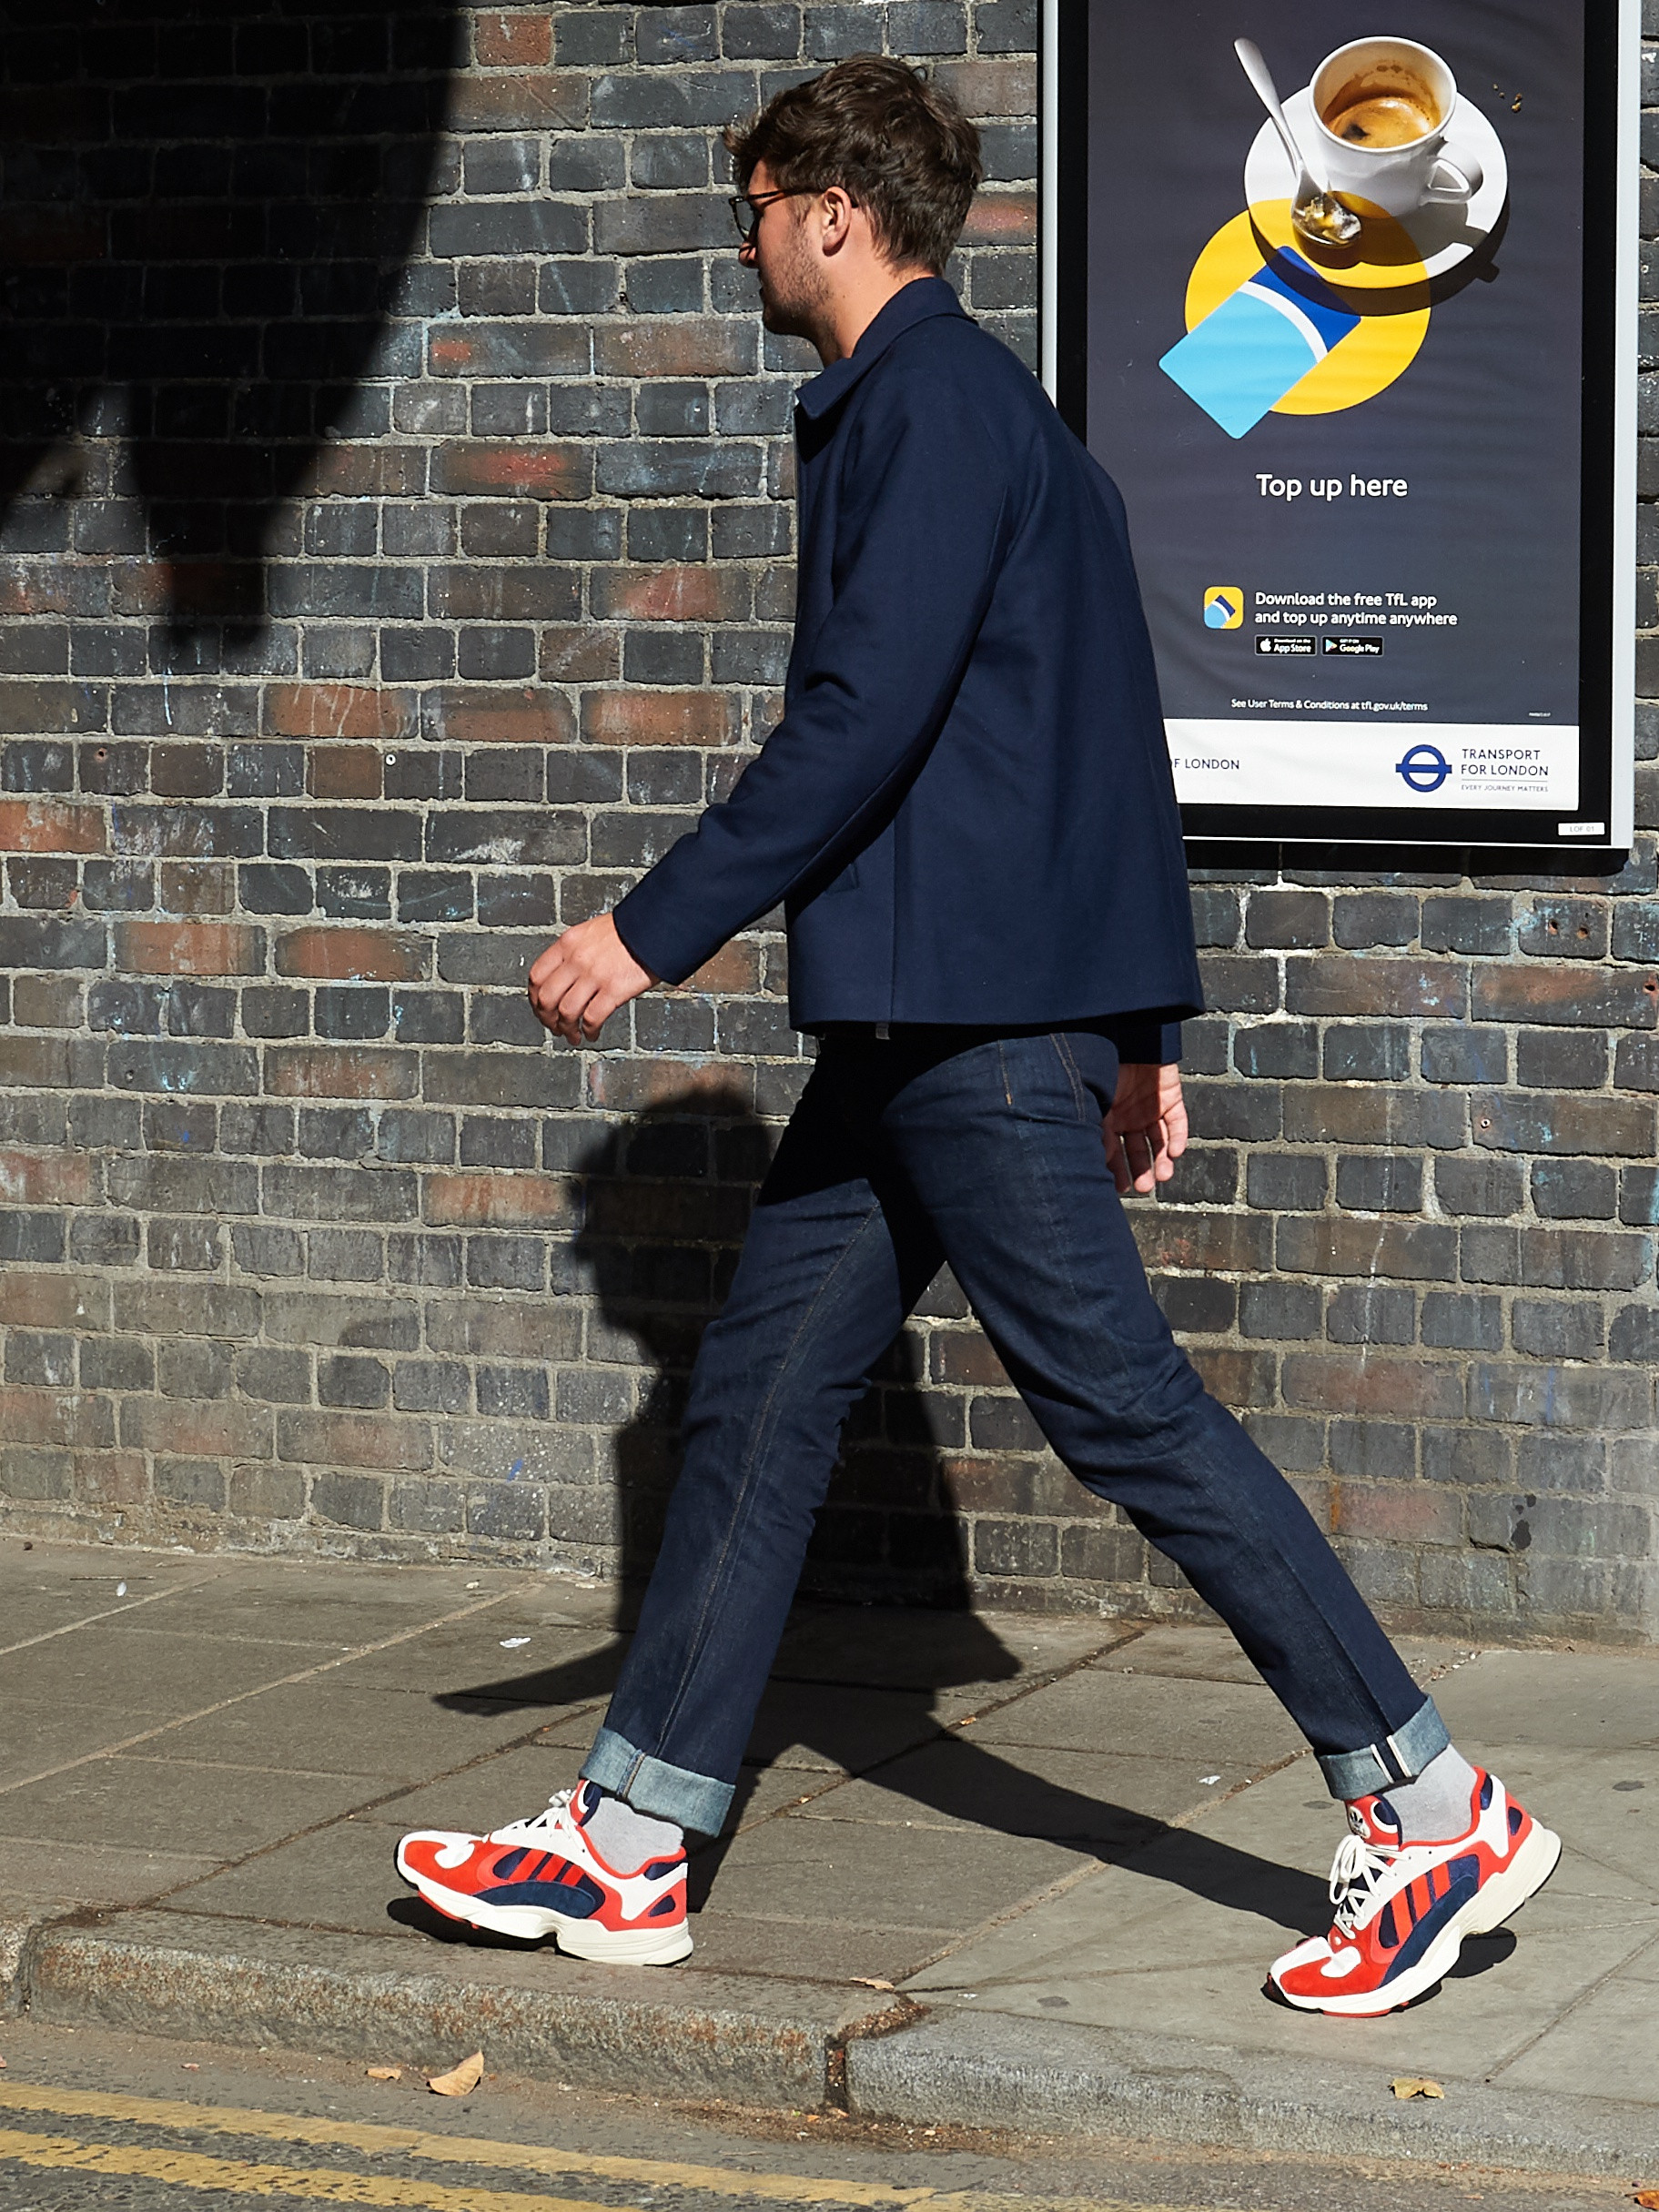 Men's outfit idea for 2021 with utility jacket, dark blue jeans, bright sneakers. Suitable for spring and fall.